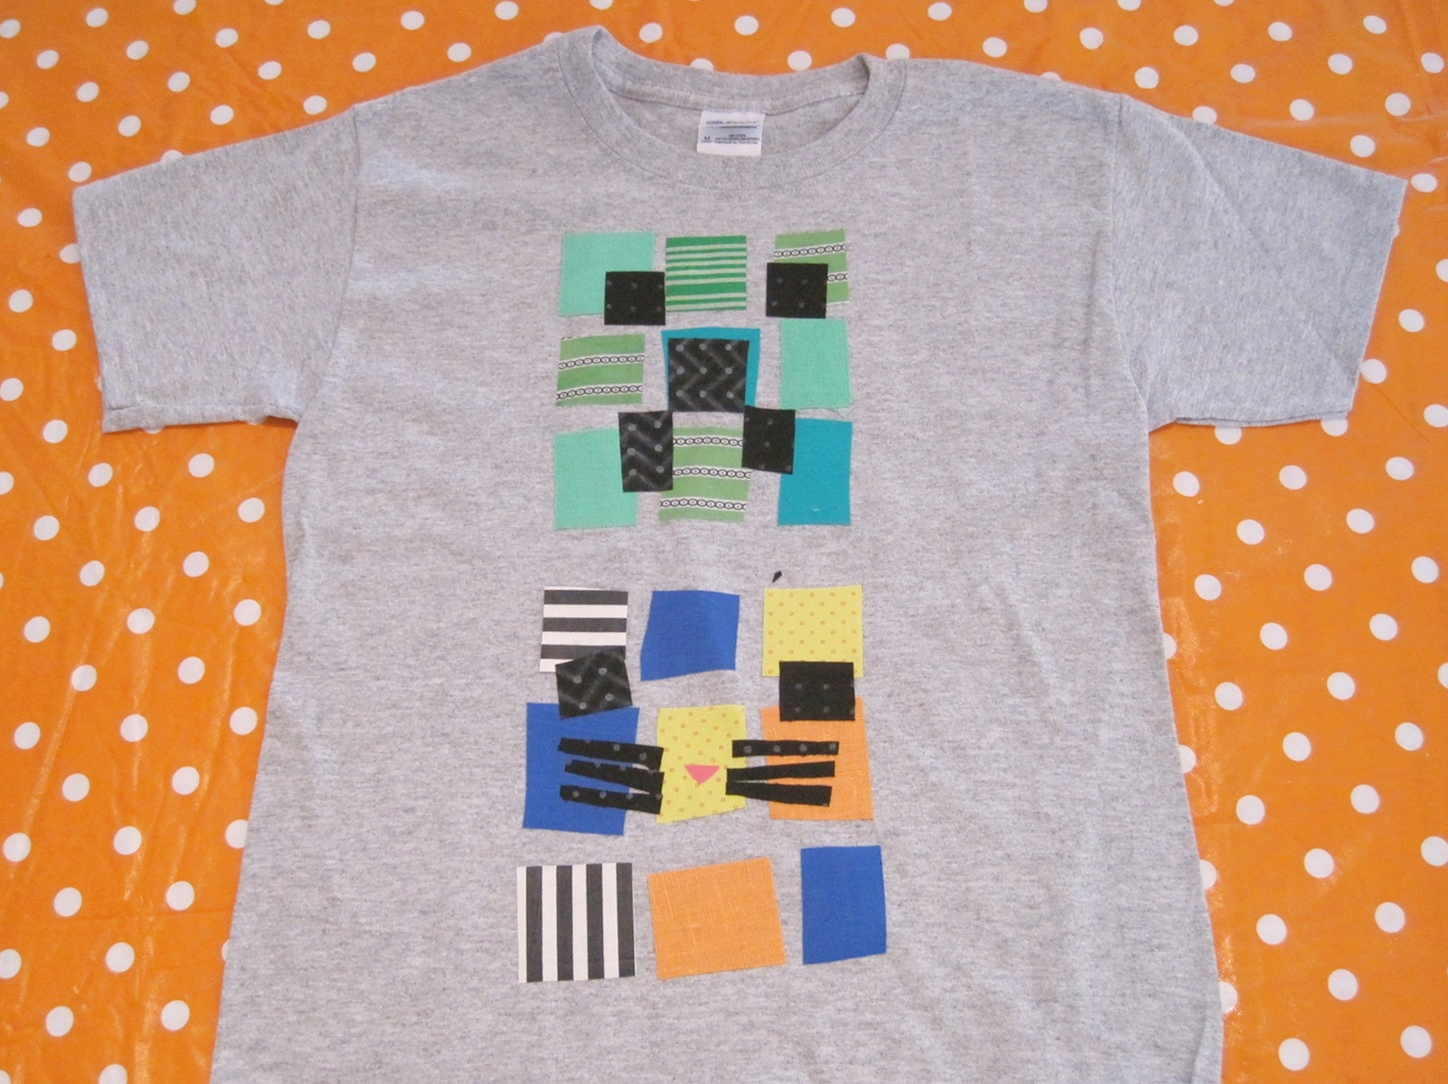 Minecraft T-shirt - ages 6 and up -  Design your own Minecraft t-shirt using